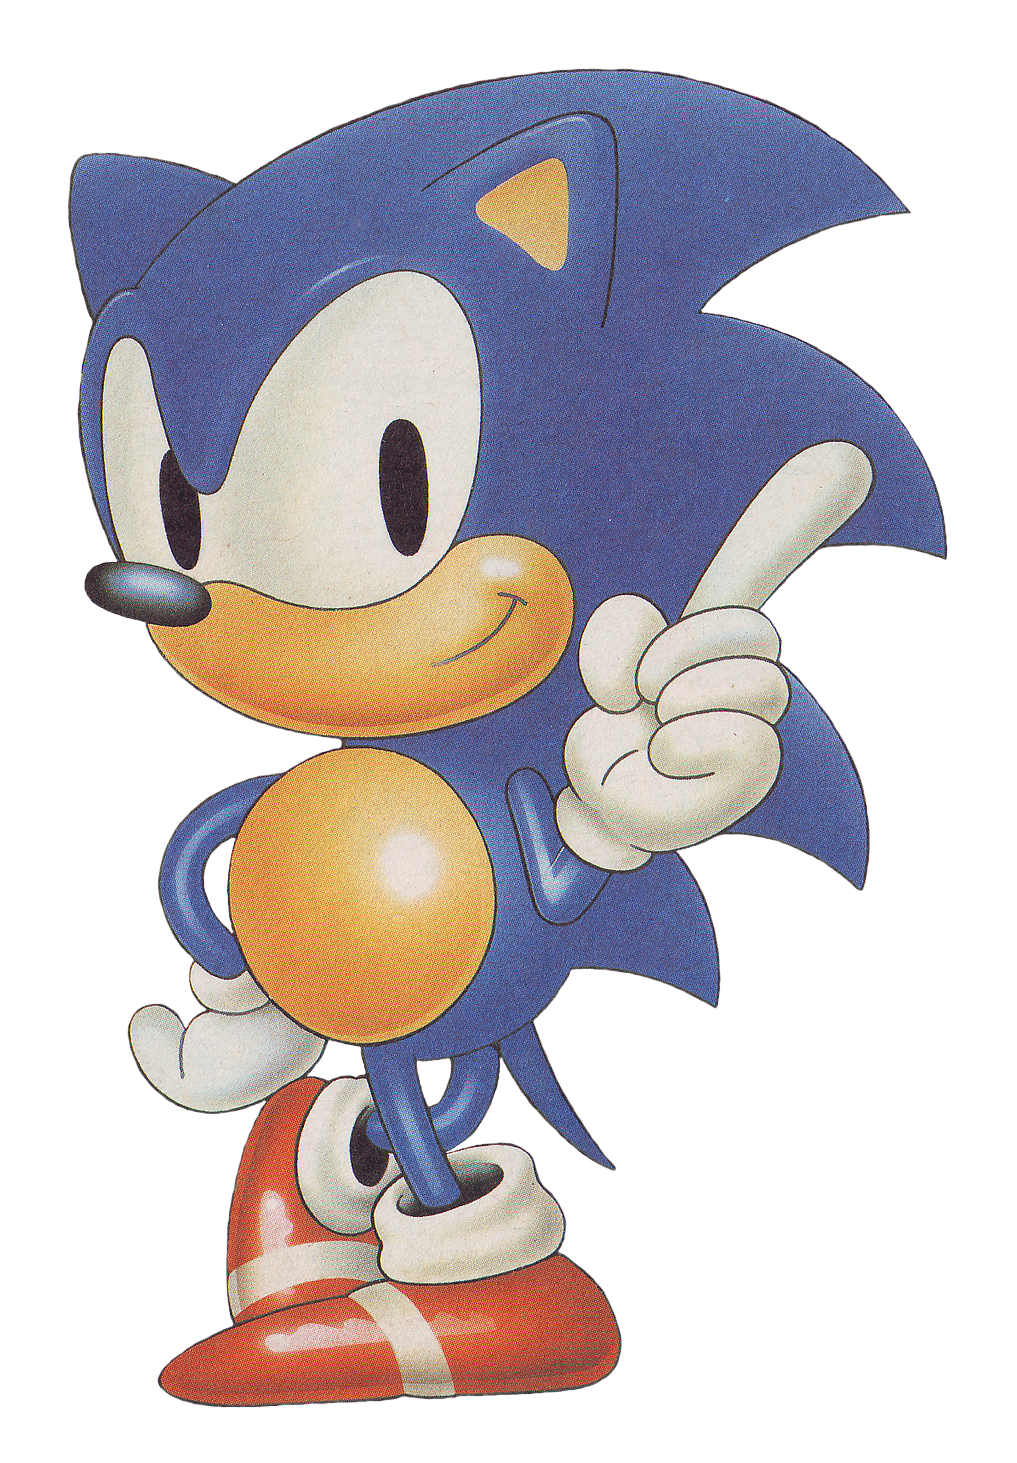 Hedgehog clipart comic. Sonic the japan cover